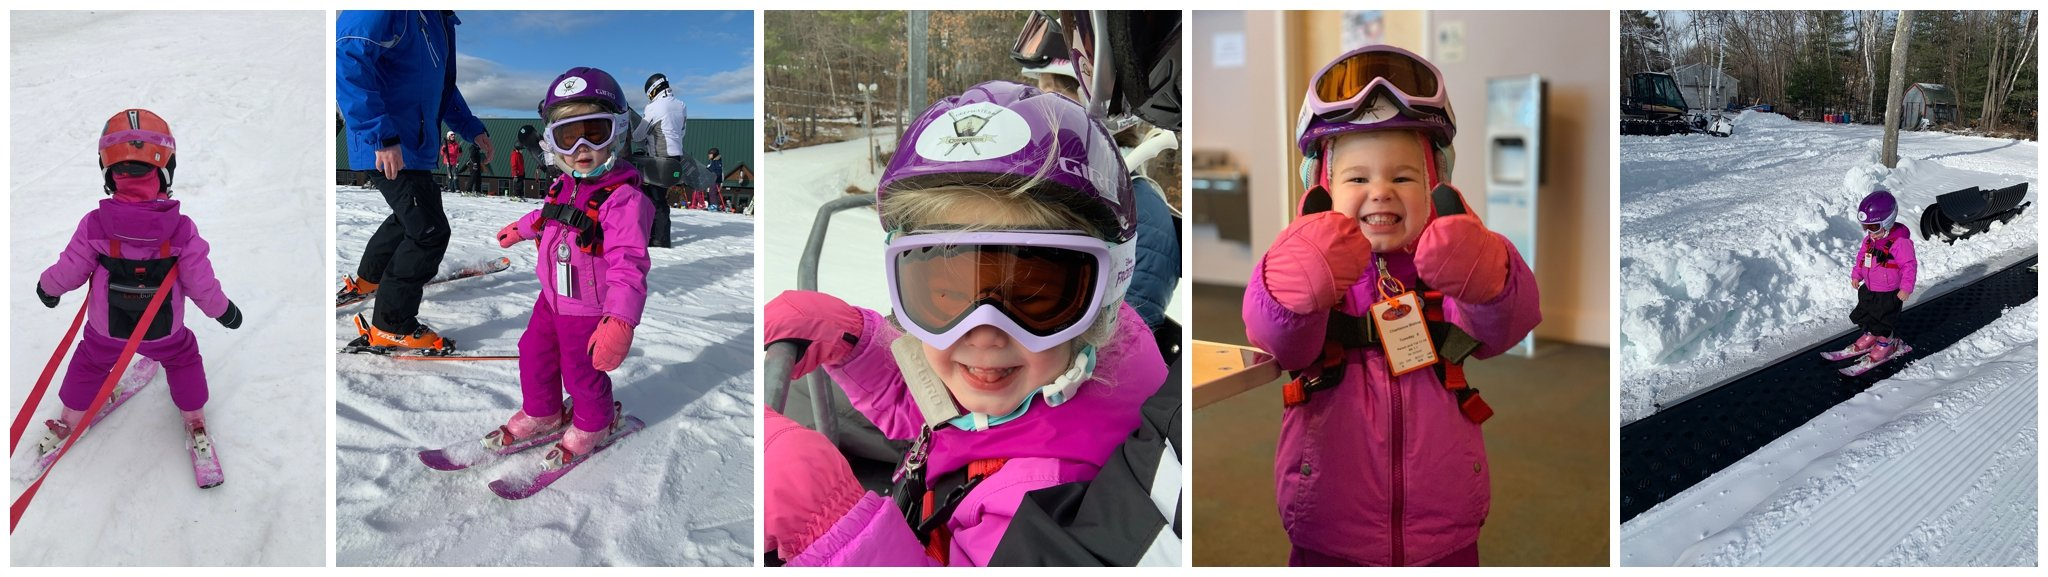 how to ski with young children